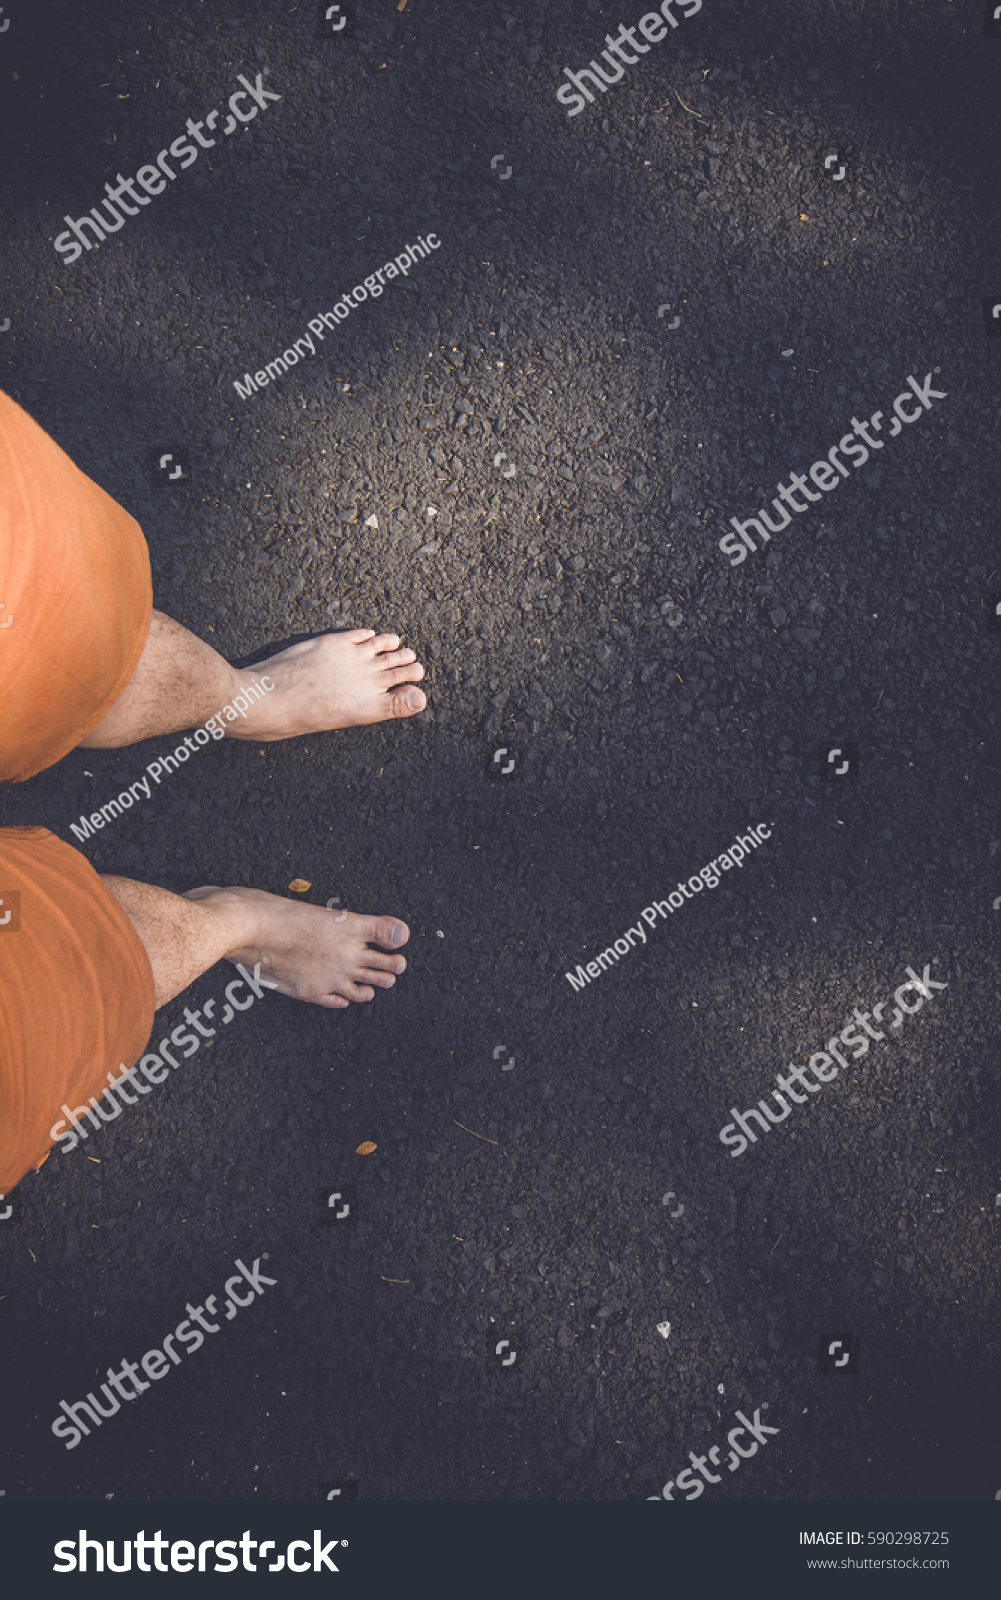 Top view leg bare feet on black road for travel background. #590298725